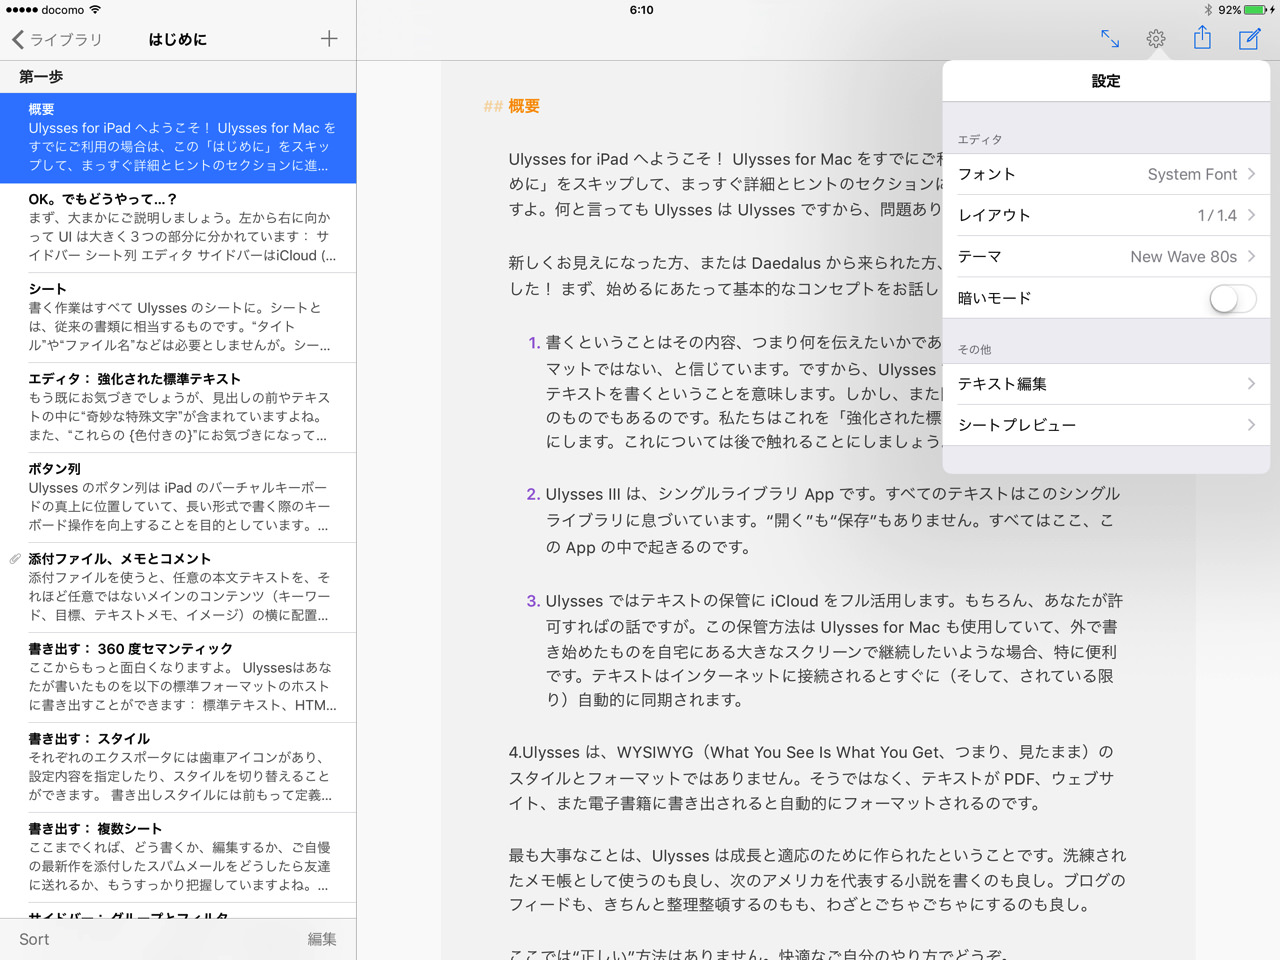 Ulysses for ipad2